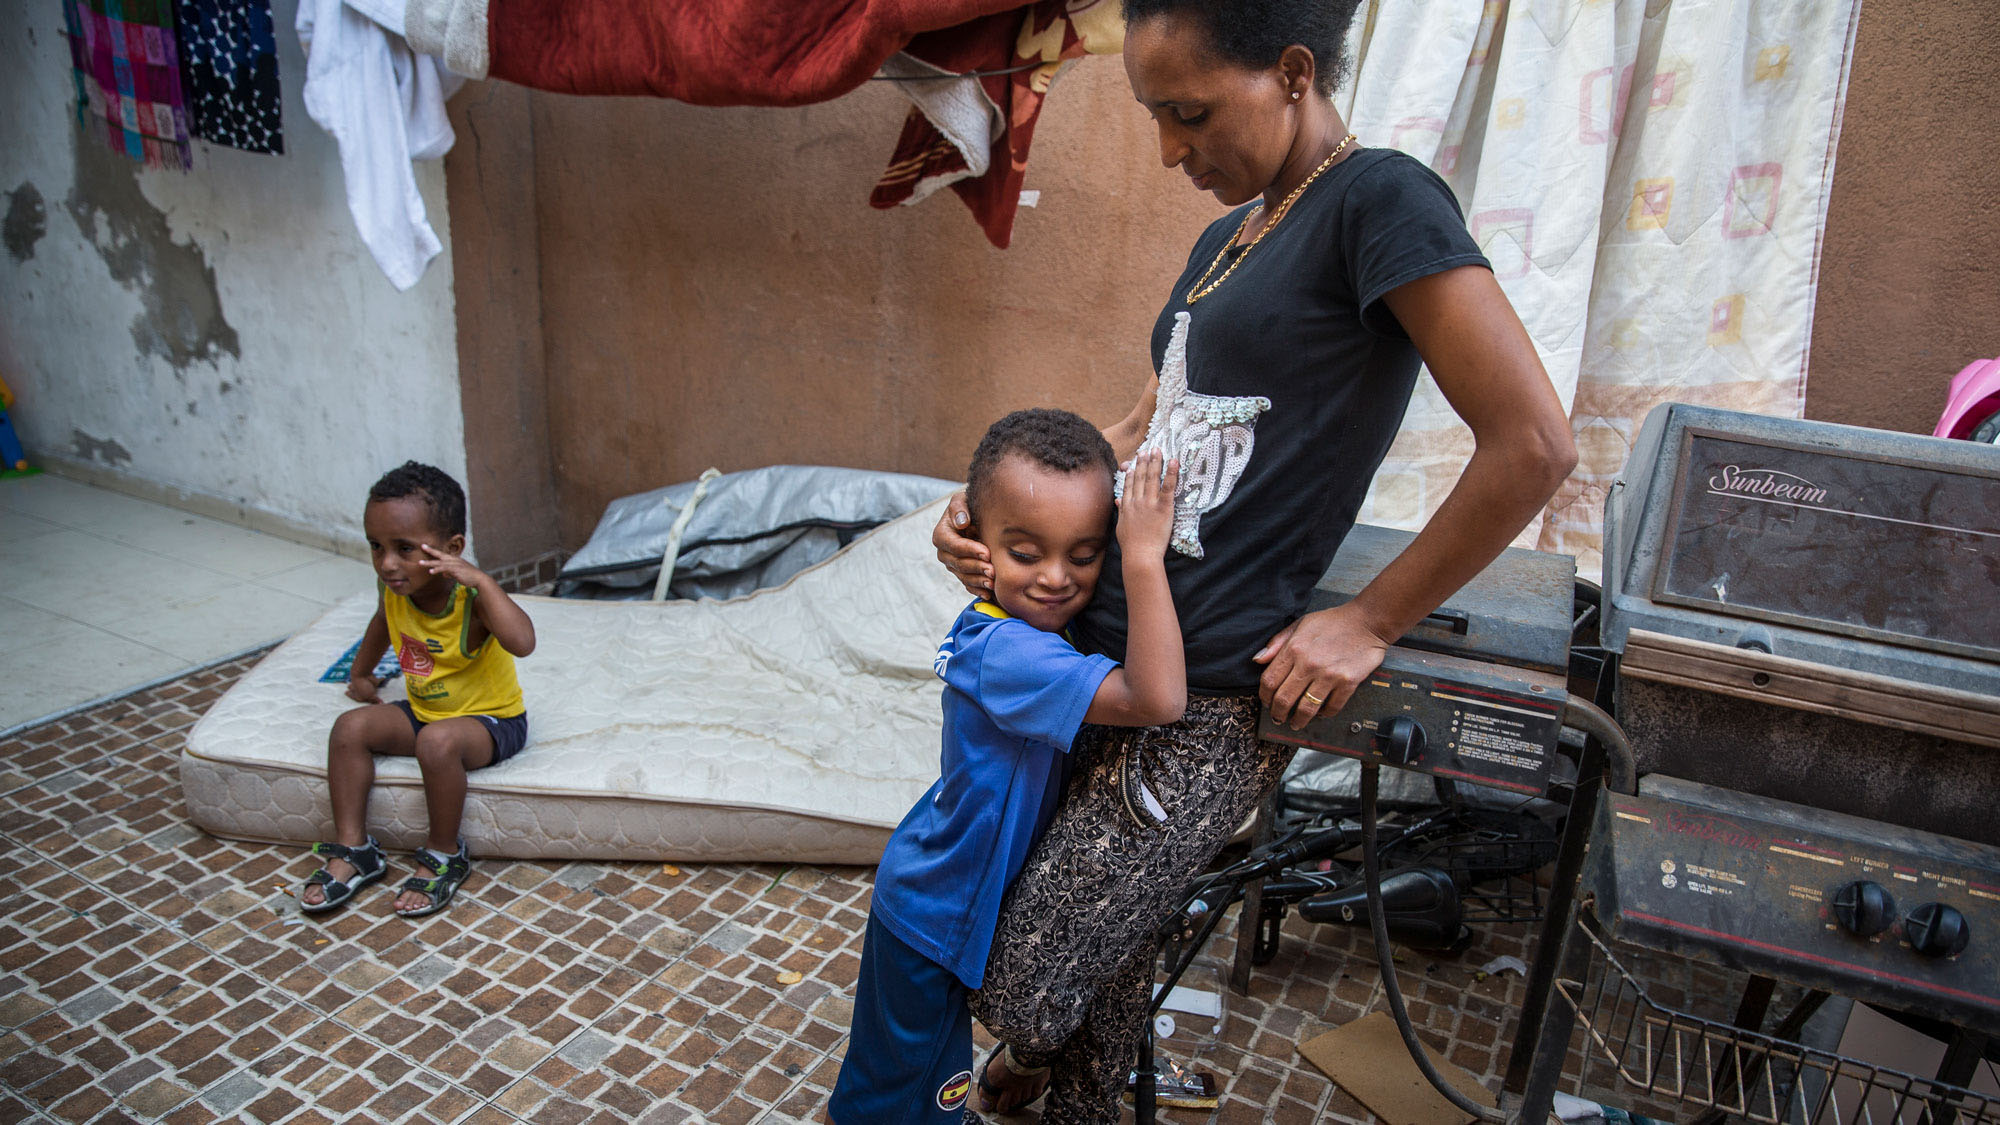 Brkitay Gebru with her sons, Tariki, 4, and Natanael, 3, in the courtyard of their building where immigrants from Eritrea and other countries rent rooms in Tel Aviv.